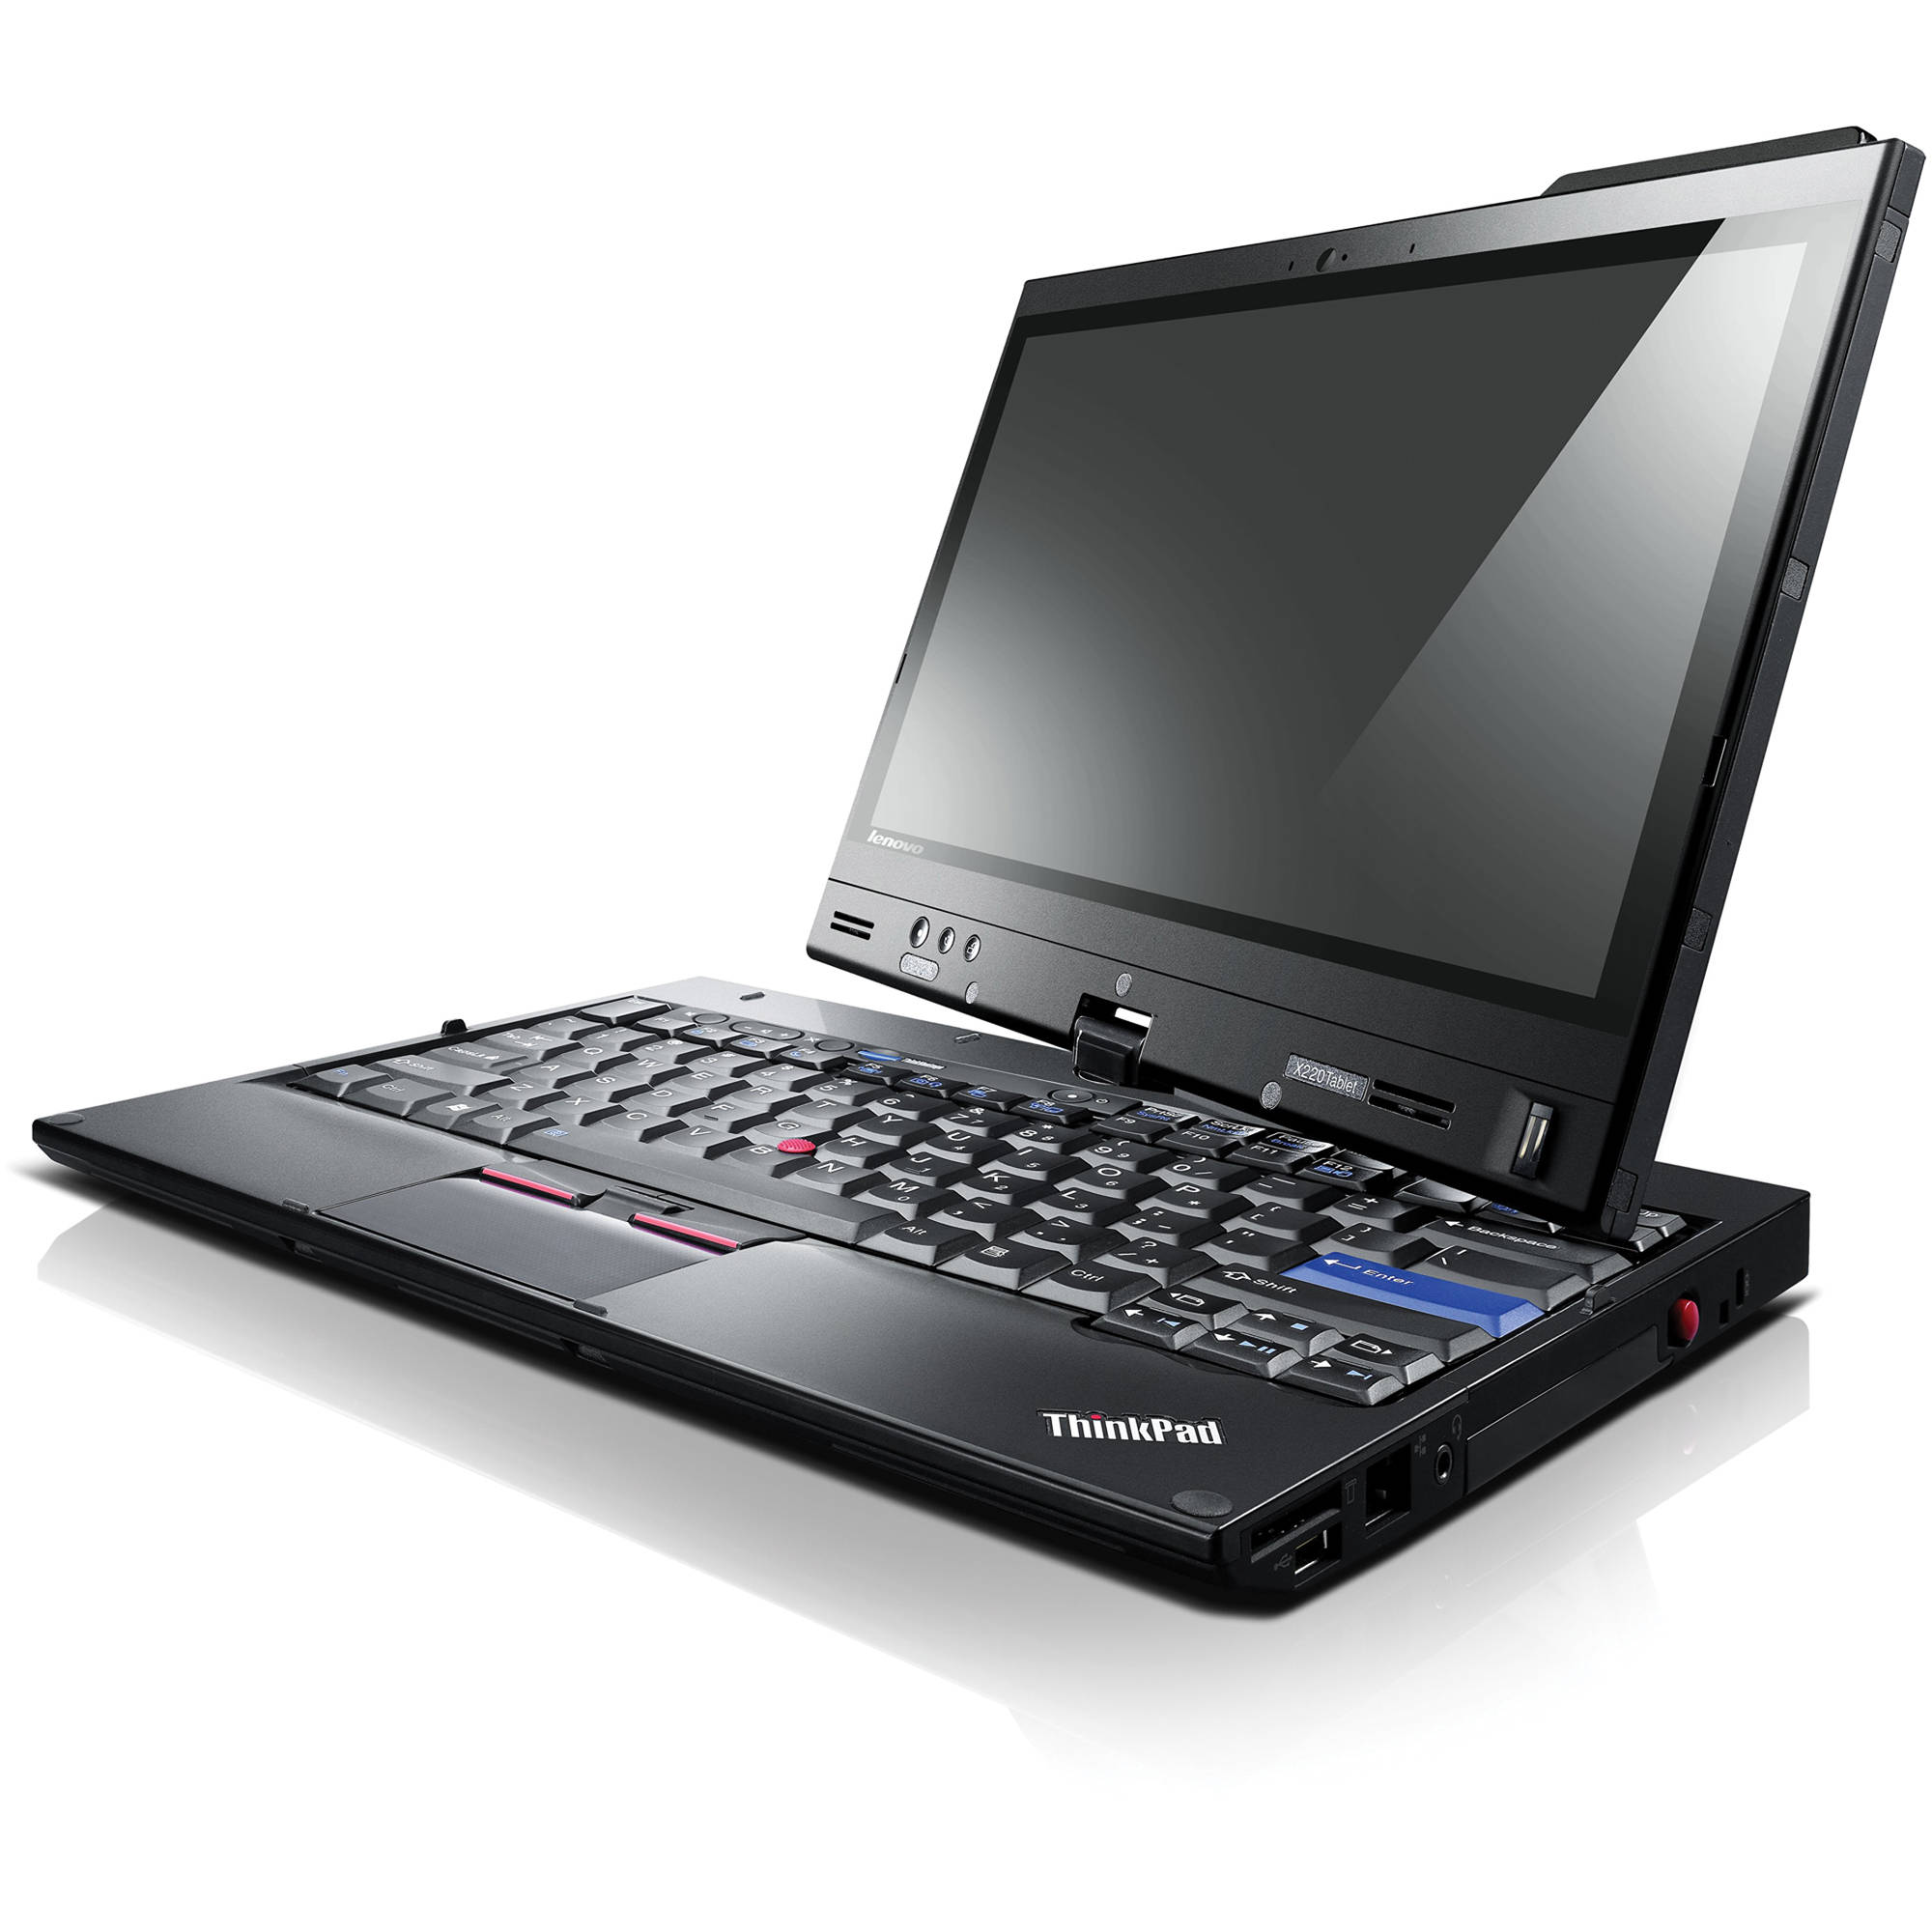 Lenovo 320GB ThinkPad X220 42963MU 12 5